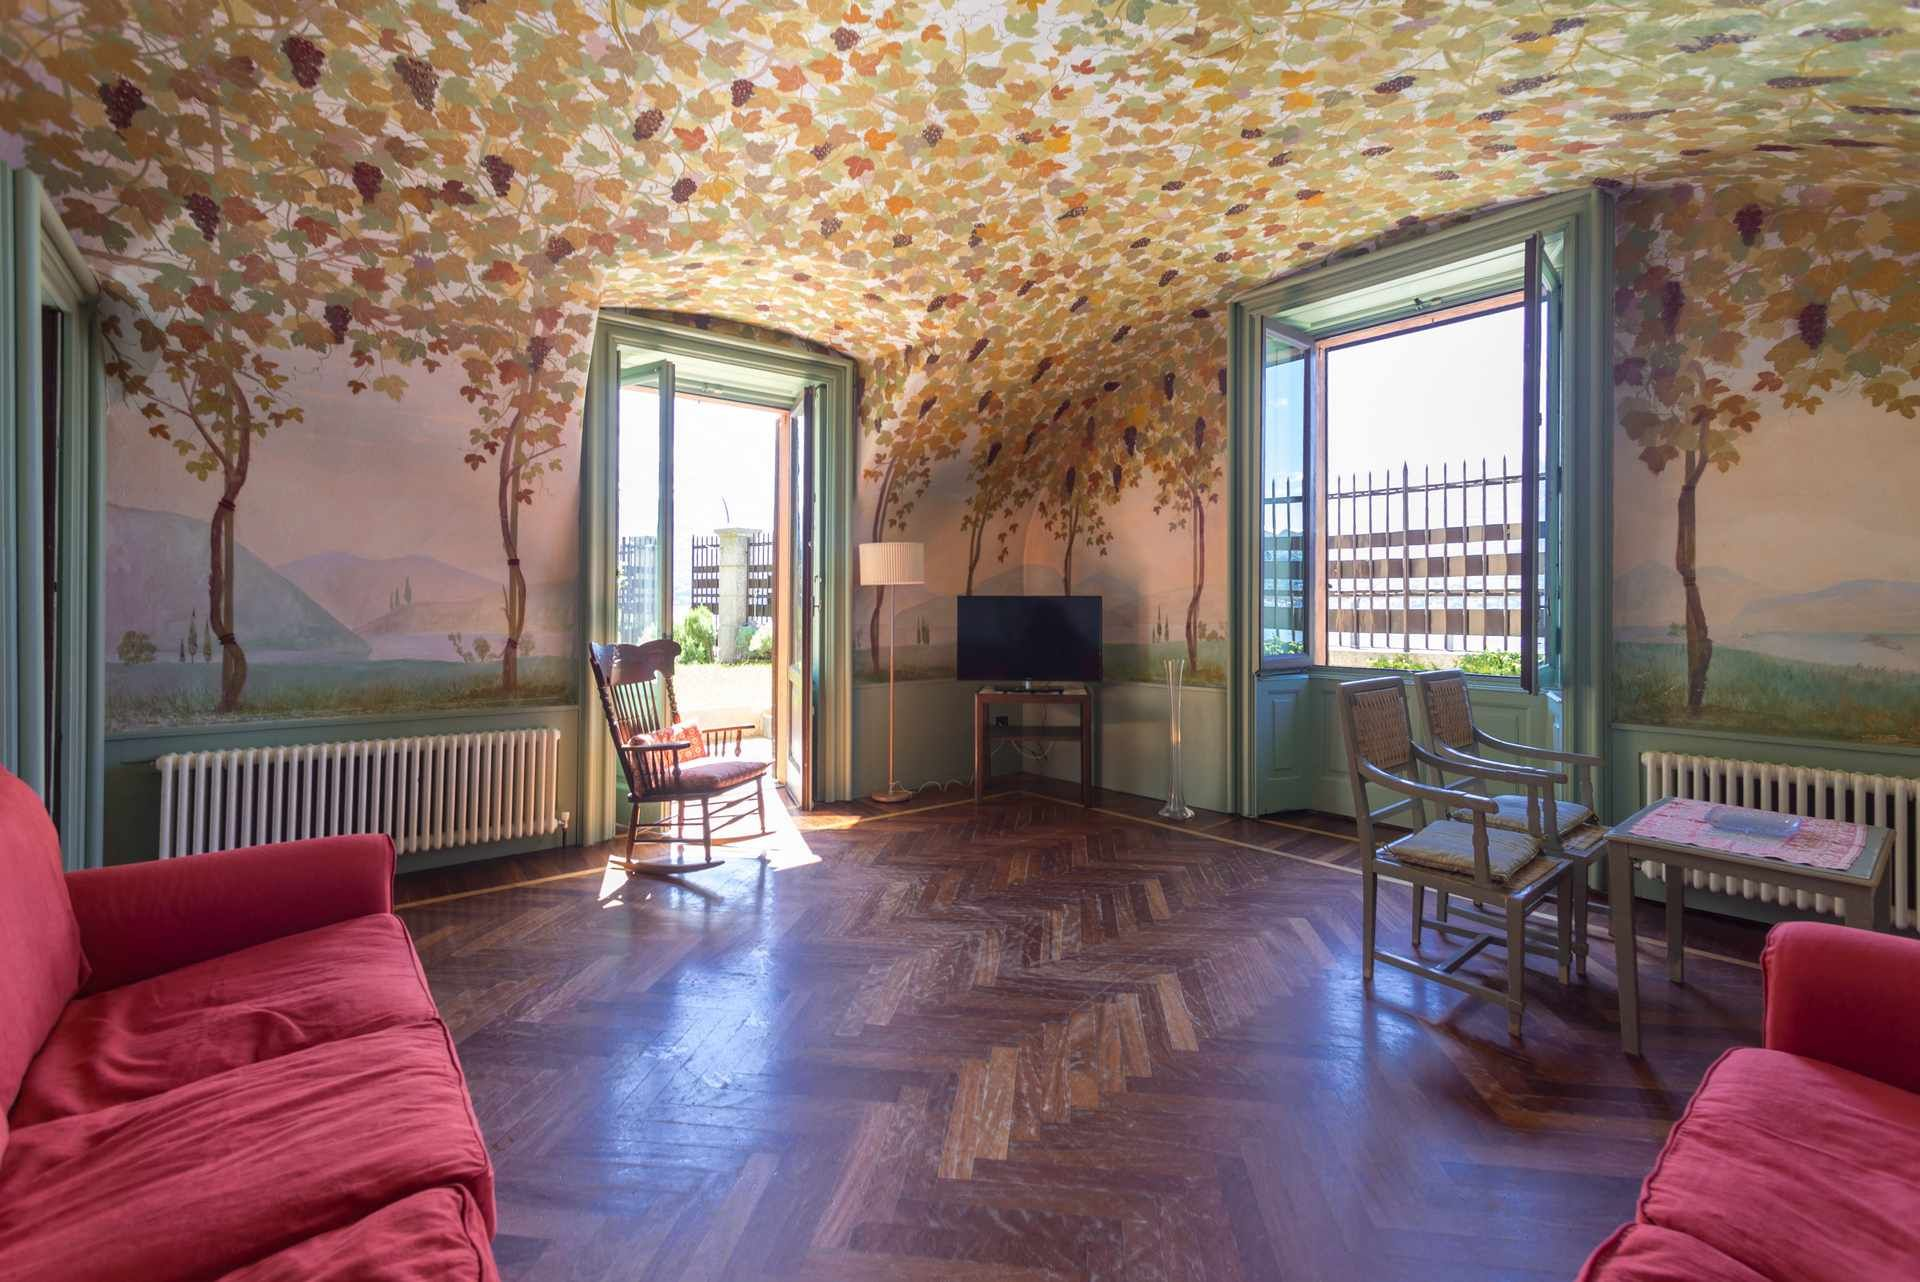 Let yourself be surprised by its frescoed rooms